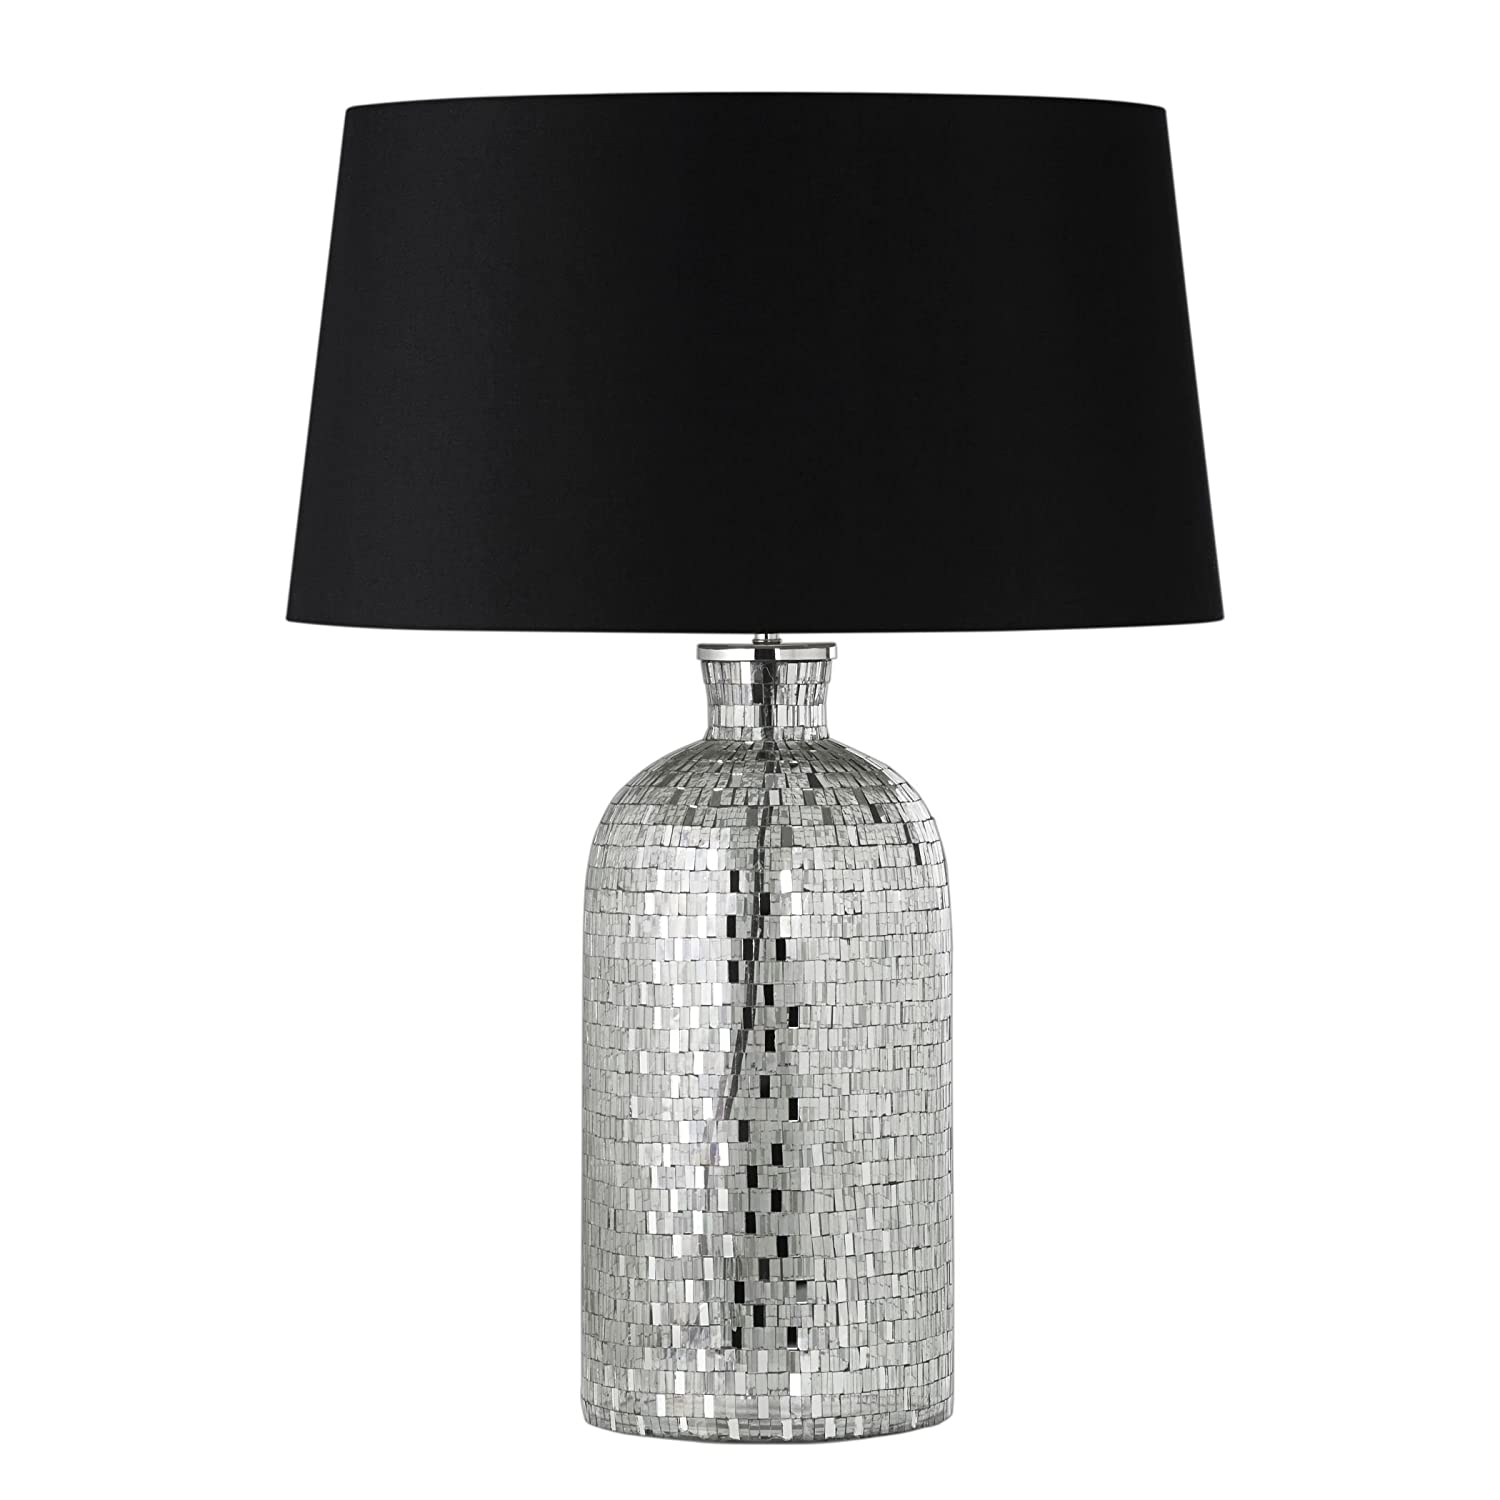 Modern black and silver ceramic pebbles table lamp haysoms - Modern Black And Silver Ceramic Pebbles Table Lamp Haysoms 20